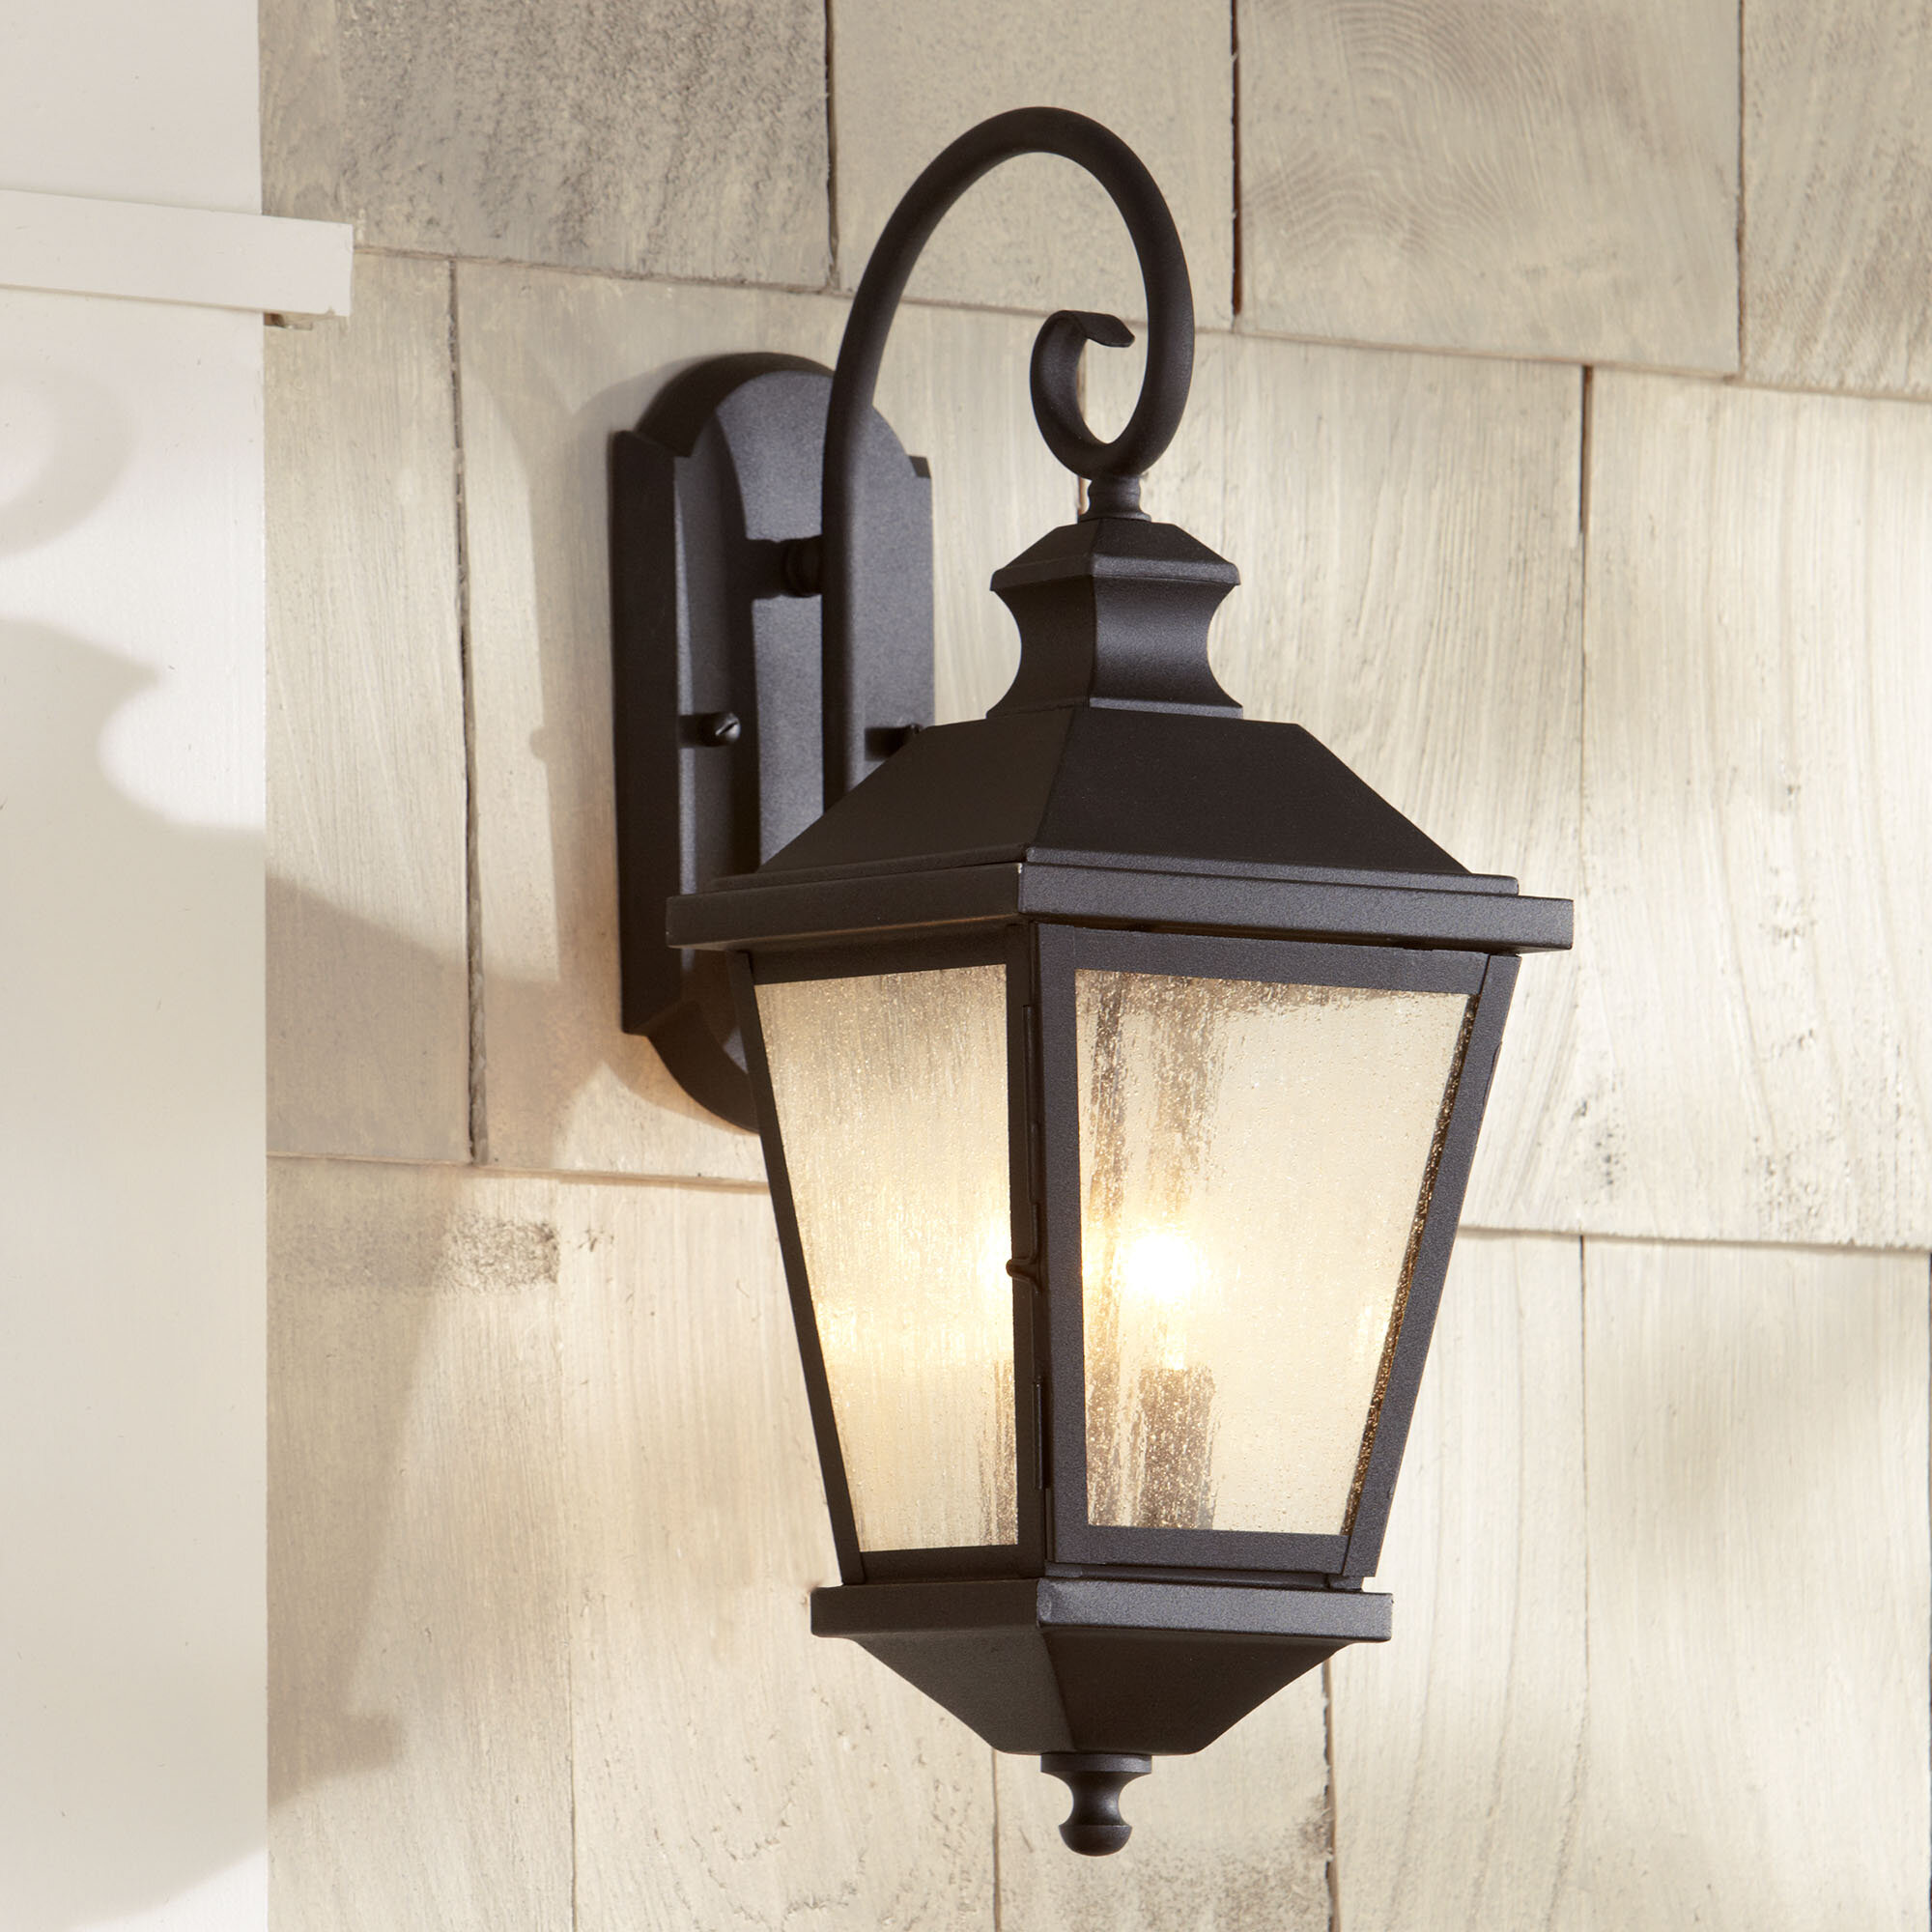 design vintage lighting and farmhouse sconce barn outdoor light barns